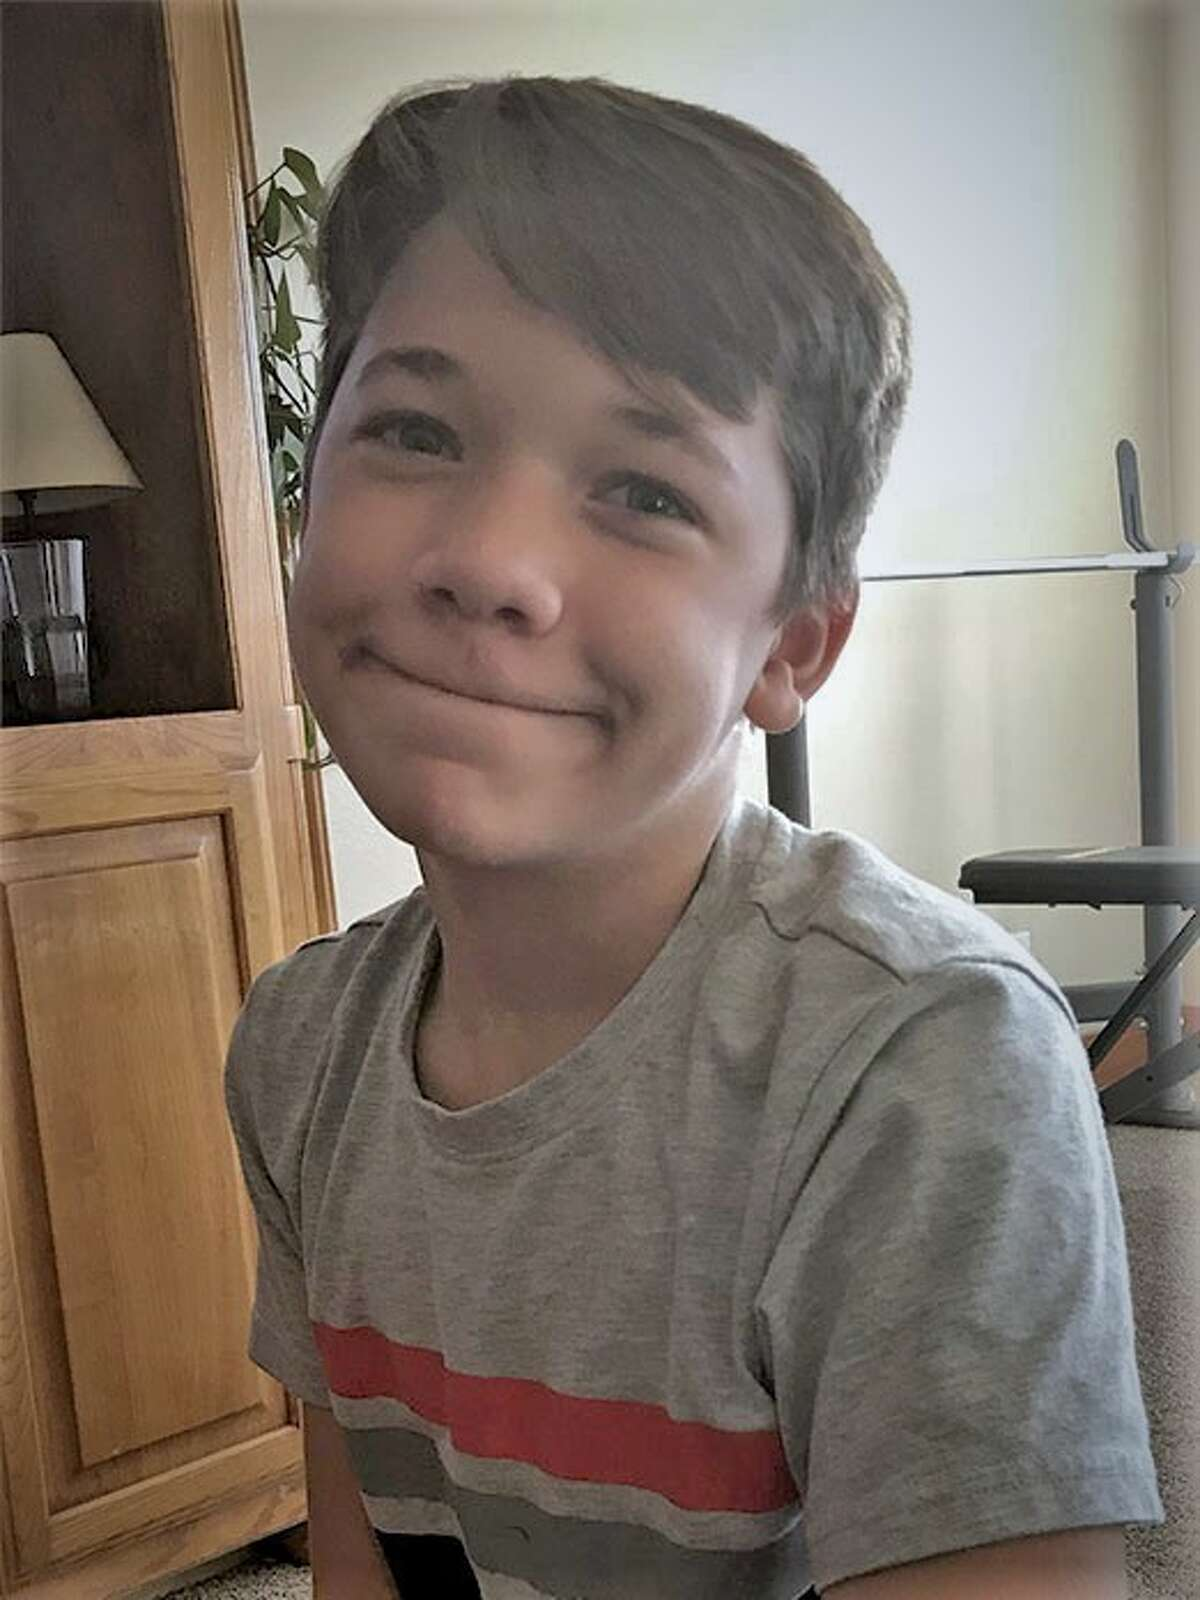 Robert is one of the children listed on the Texas Adoption Resource Exchange (TARE) website. Visit https://www.dfps.state.tx.us/Application/TARE/Home.aspx/Default for more details.